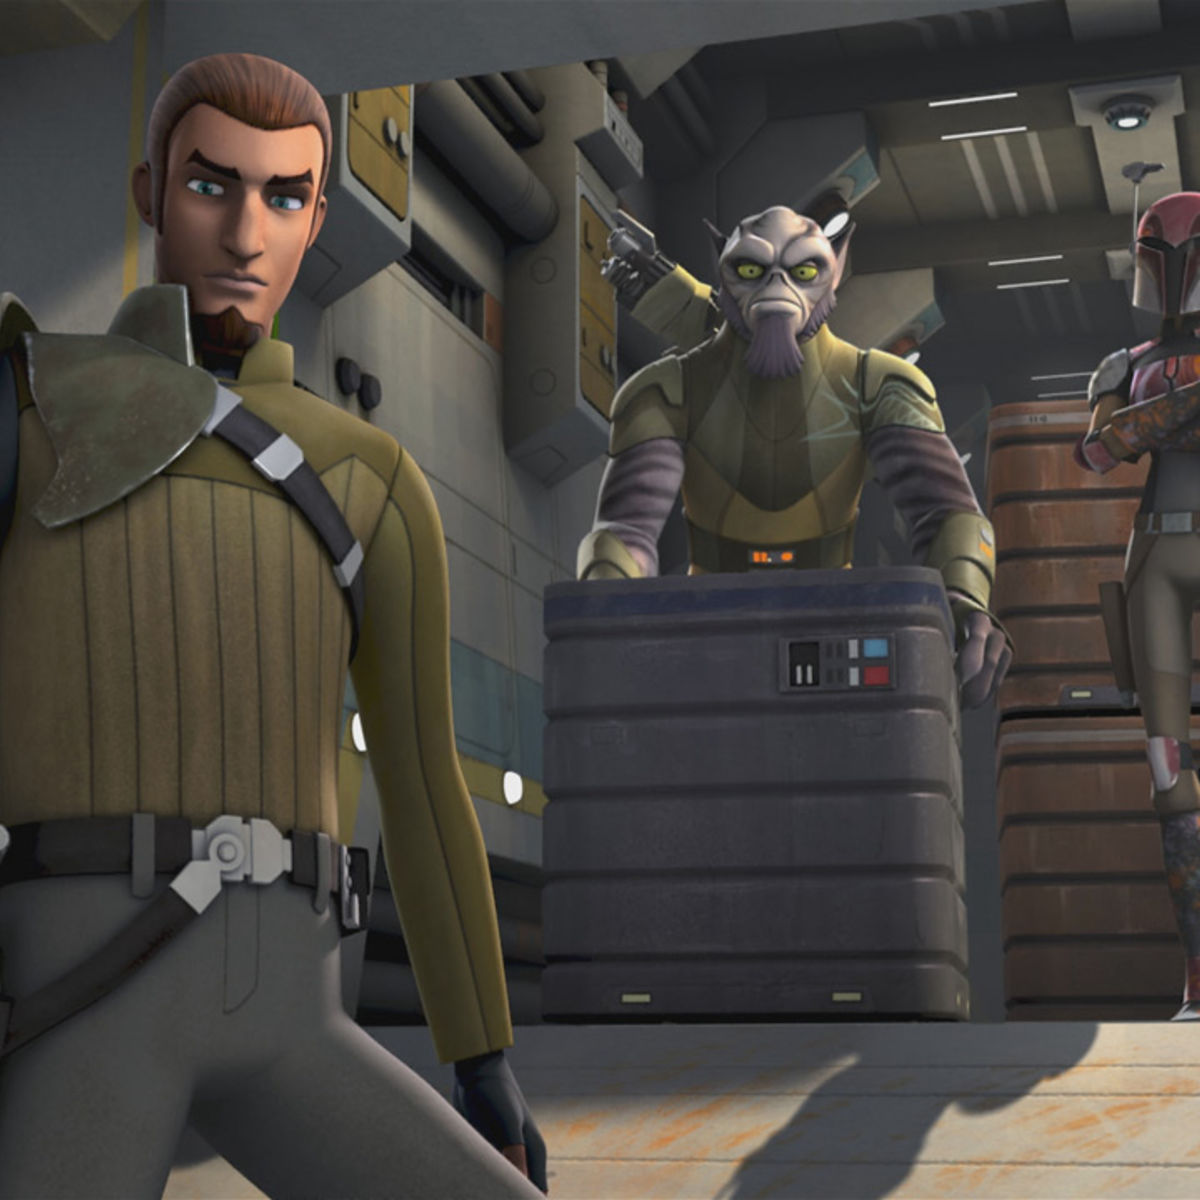 star-wars-rebels-trailer-ghost-crew.jpg